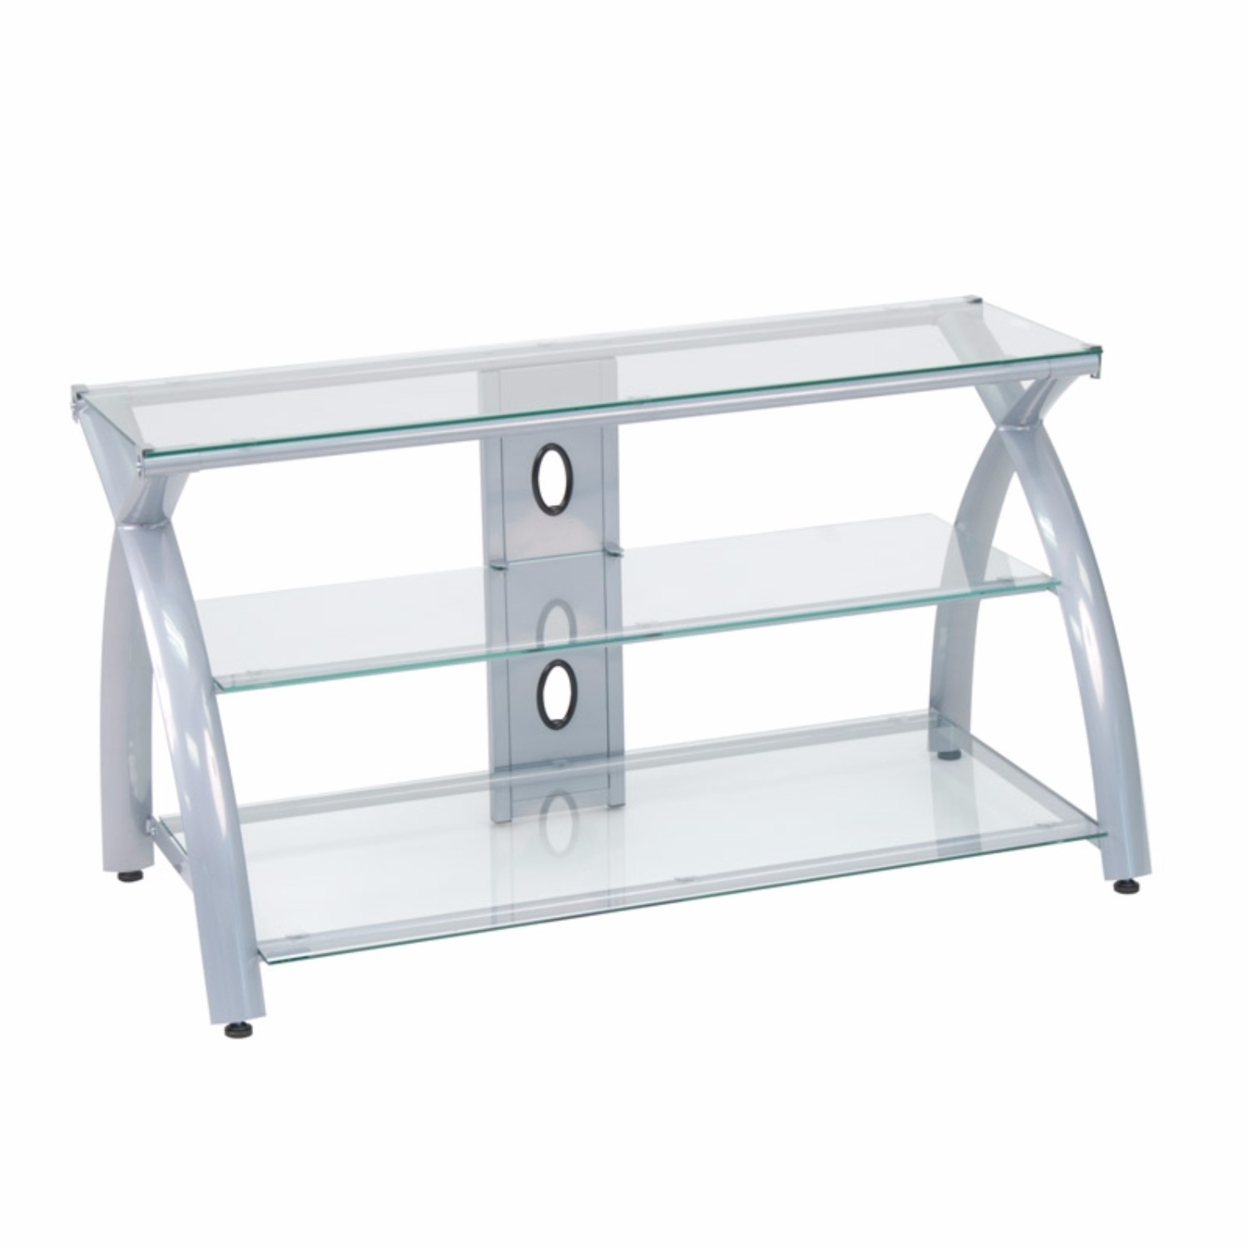 Offex Home Office Futura TV Stand Glass - Silver/Clear offex home office plinth ottoman latte